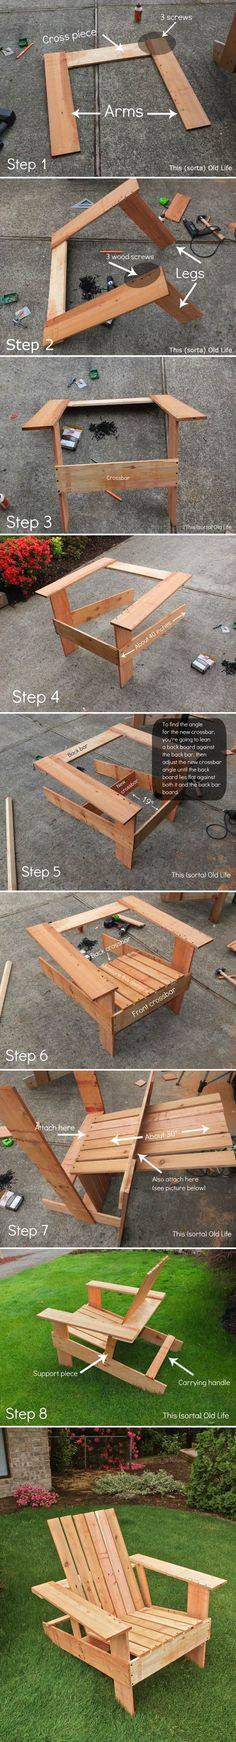 ❧ DIY Adirondack Chair Tutorial